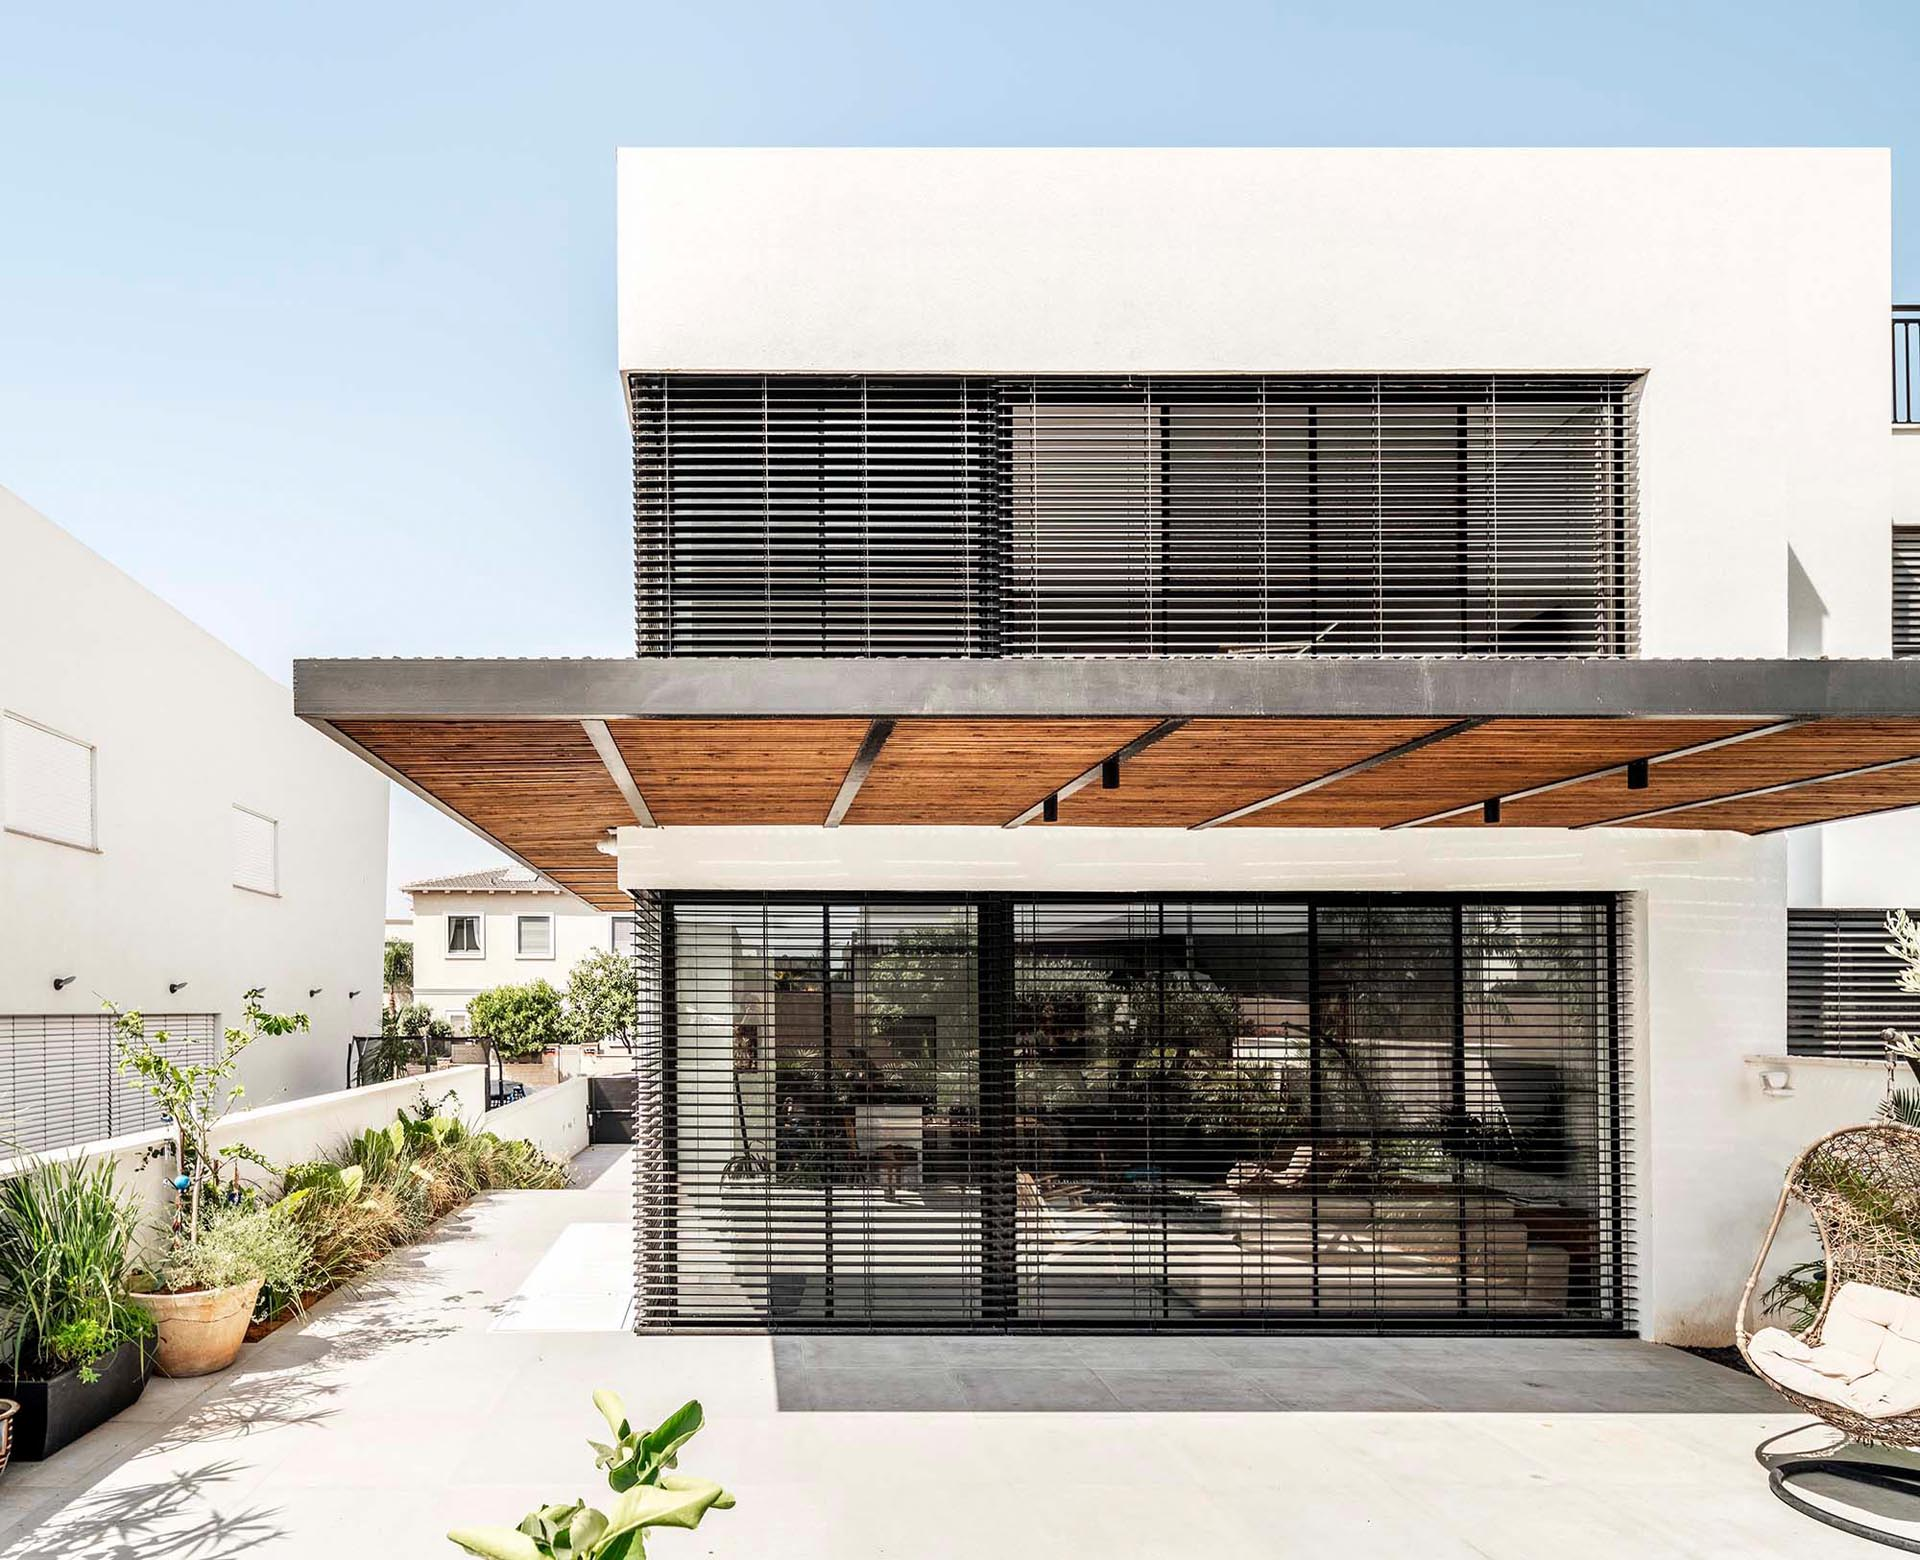 A modern home with a white facade, black window frames, and wood accents.